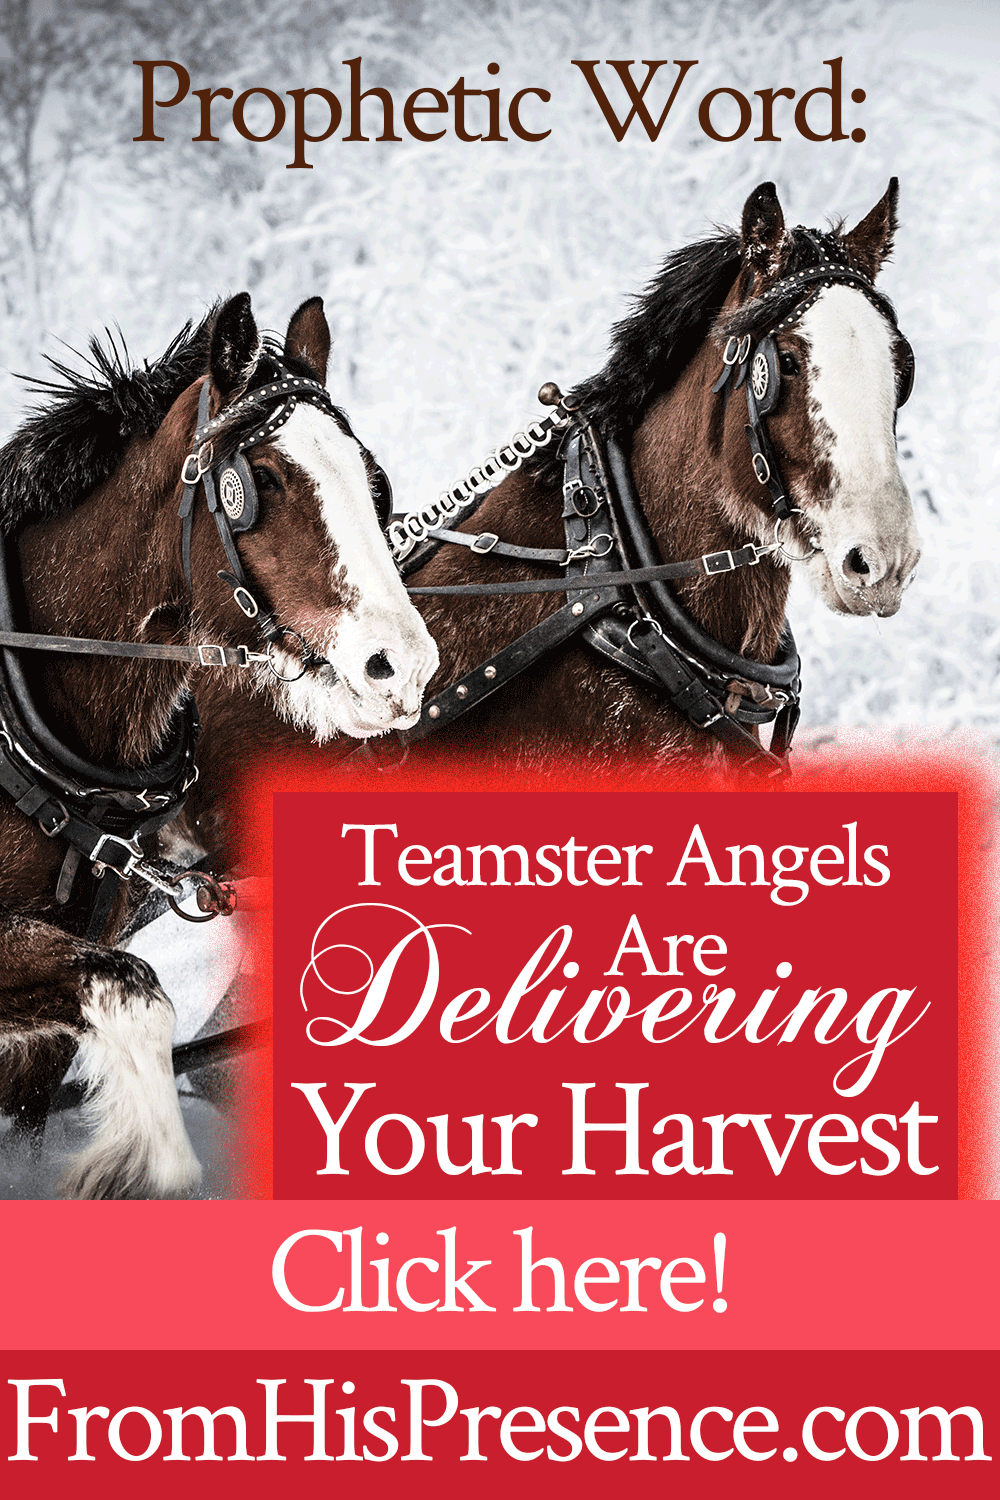 Teamster Angels Are Delivering Your Harvest   Prophetic word by Jamie Rohrbaugh   FromHisPresence.com